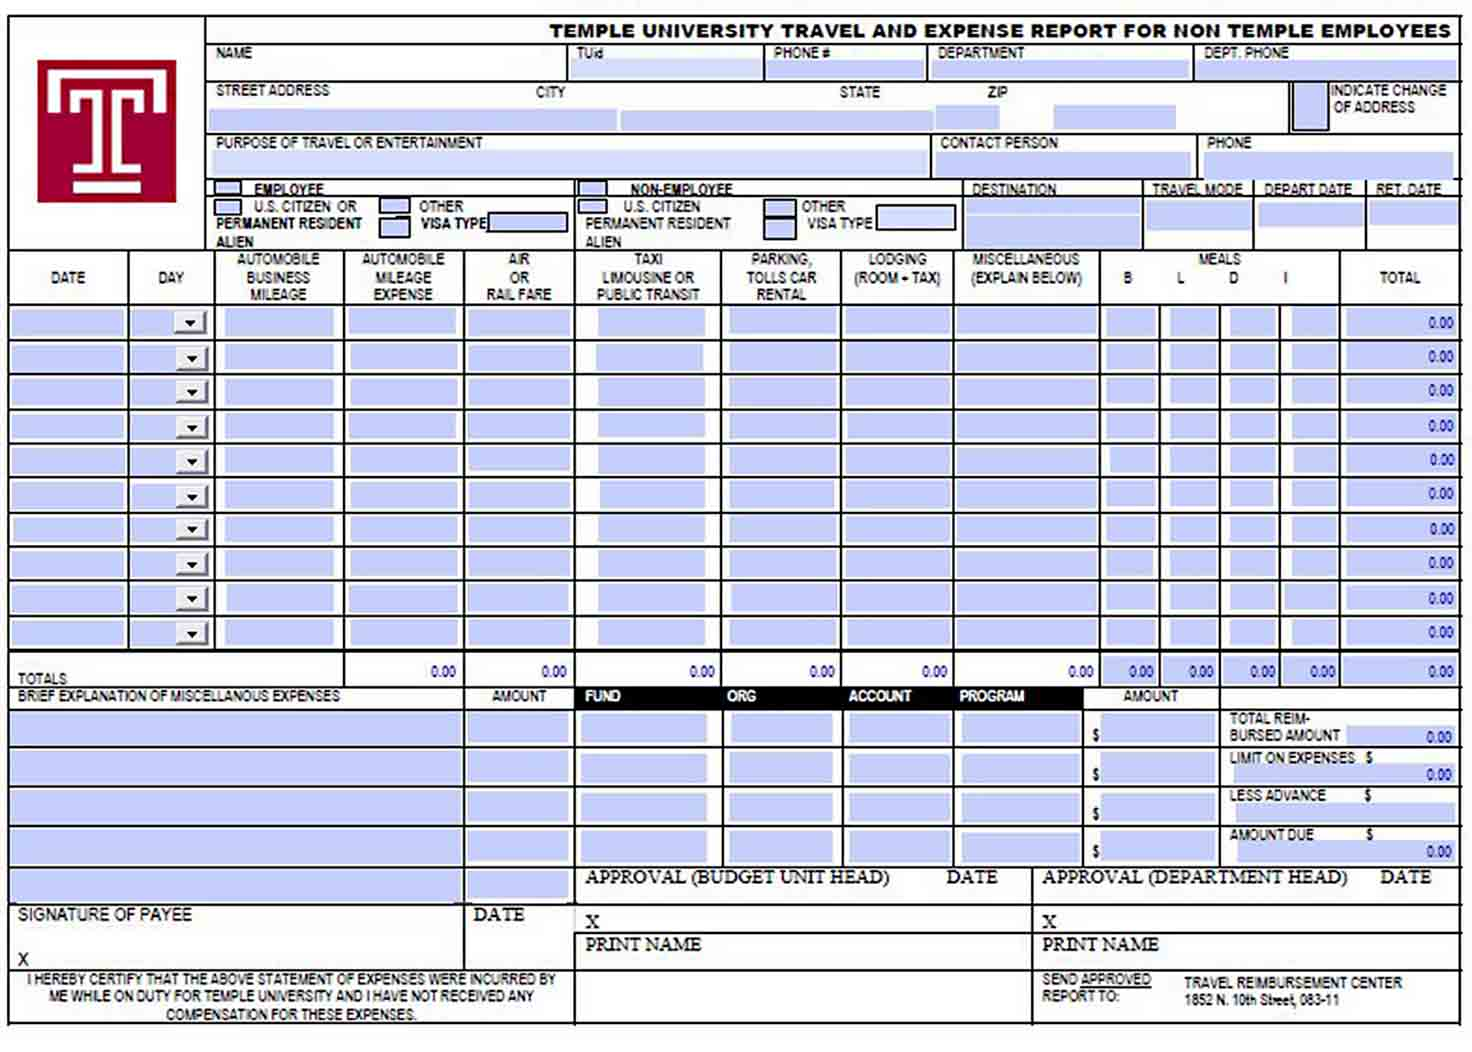 Employee Travel and Expense Report sample